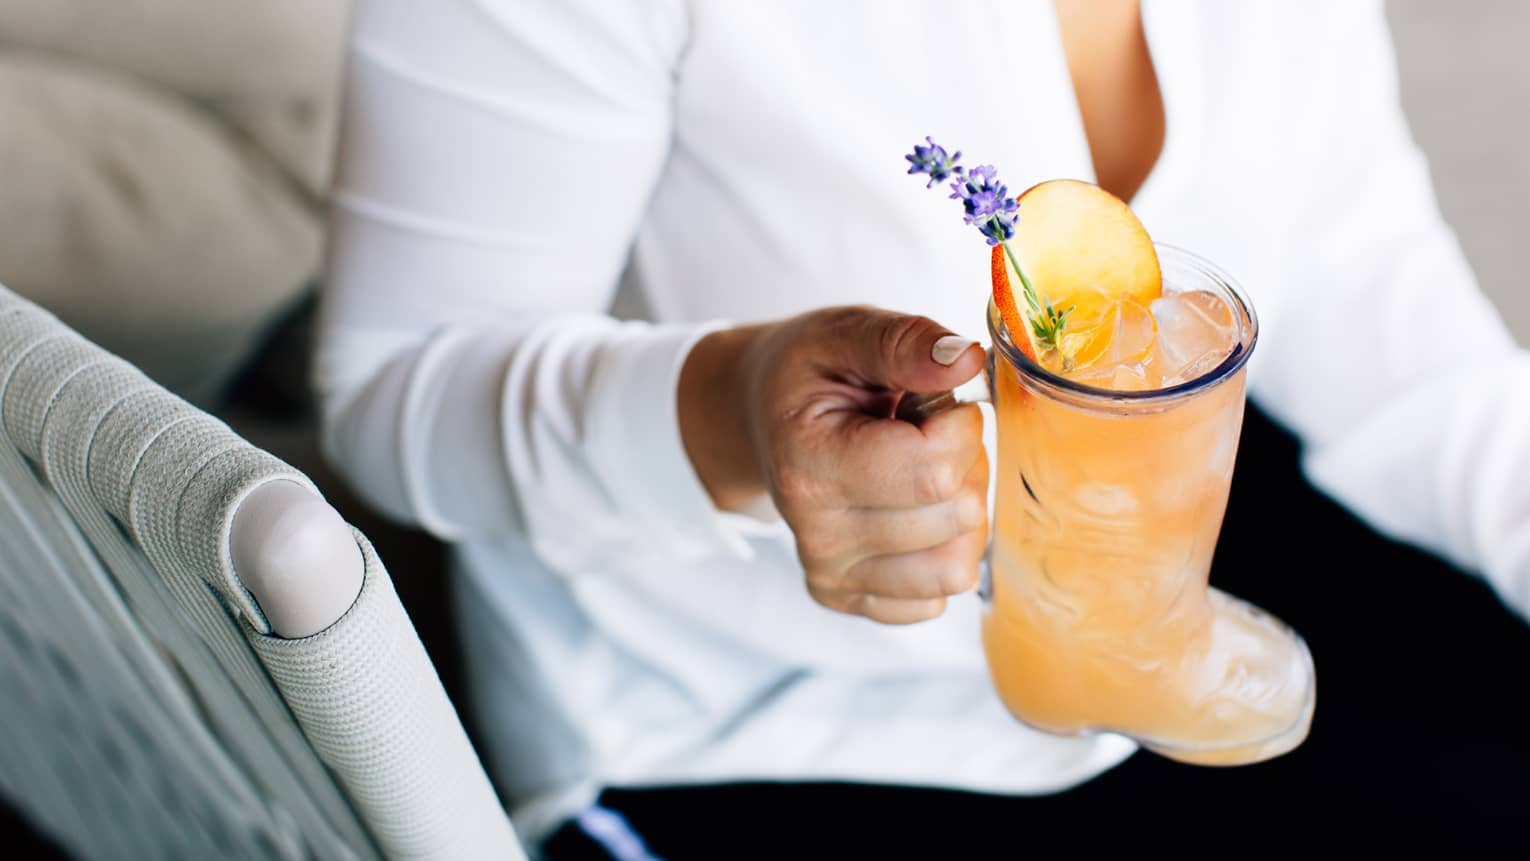 A close up of a woman's hand holding a Honey Bee-Vo Cocktail garnished with an apple slice and sprig of lavendar